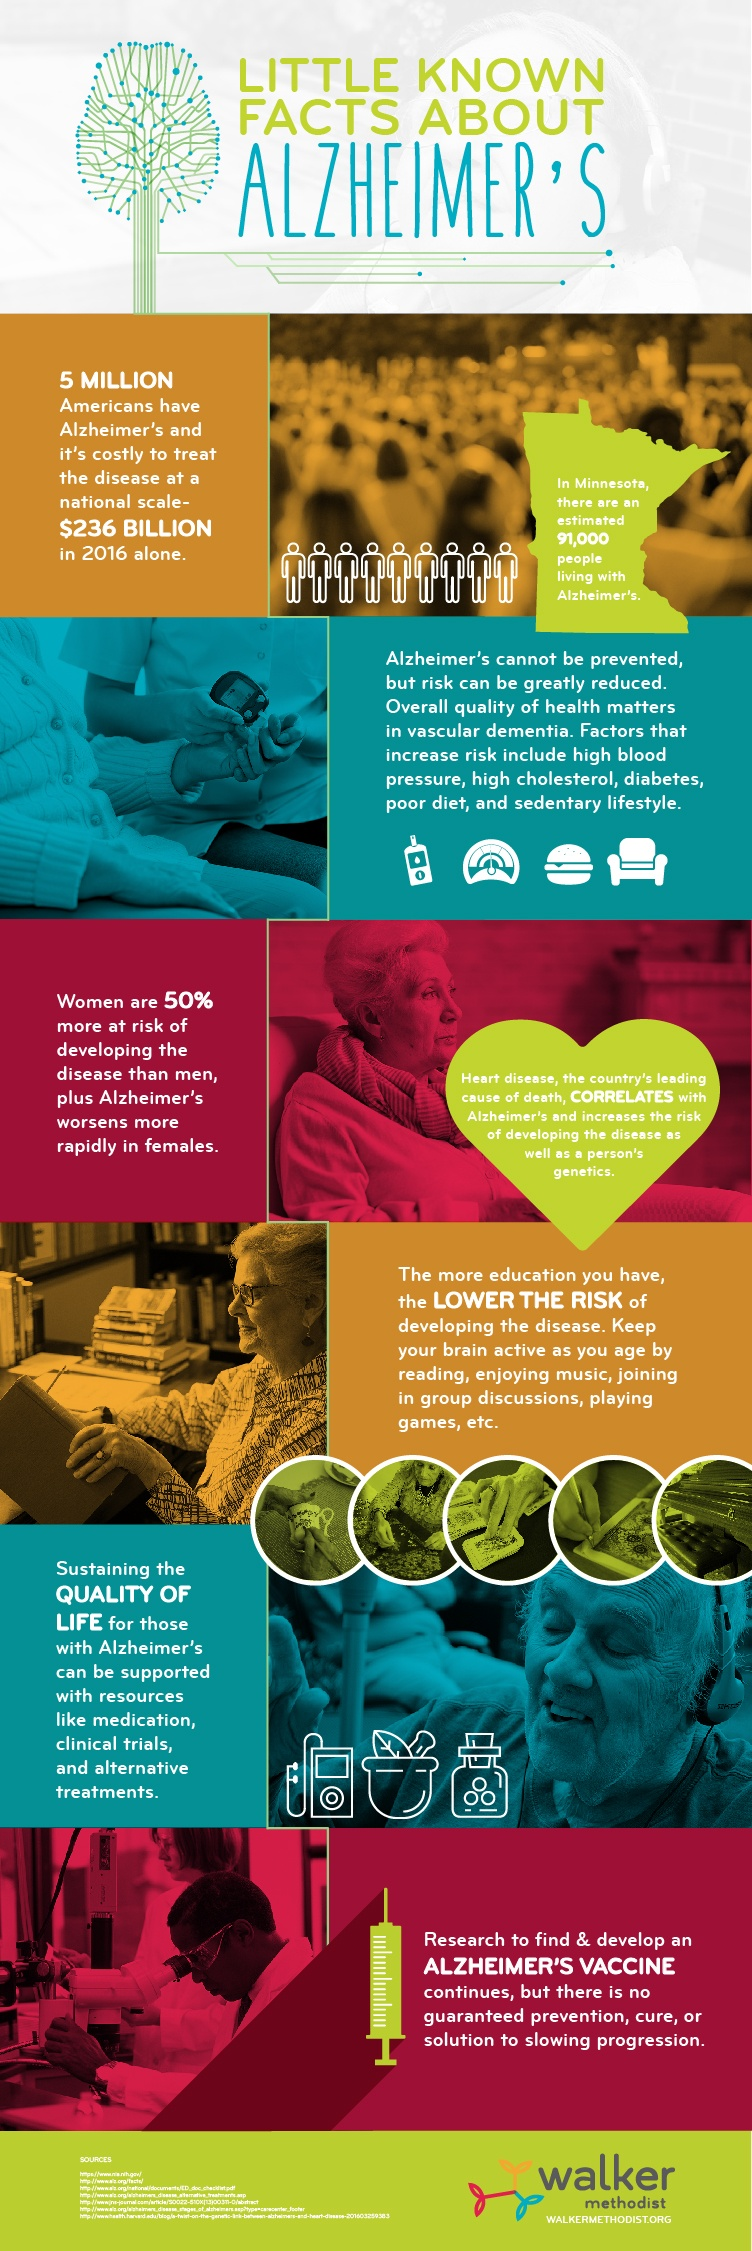 INFOGRAPHIC: Little Known Facts About Alzheimer's